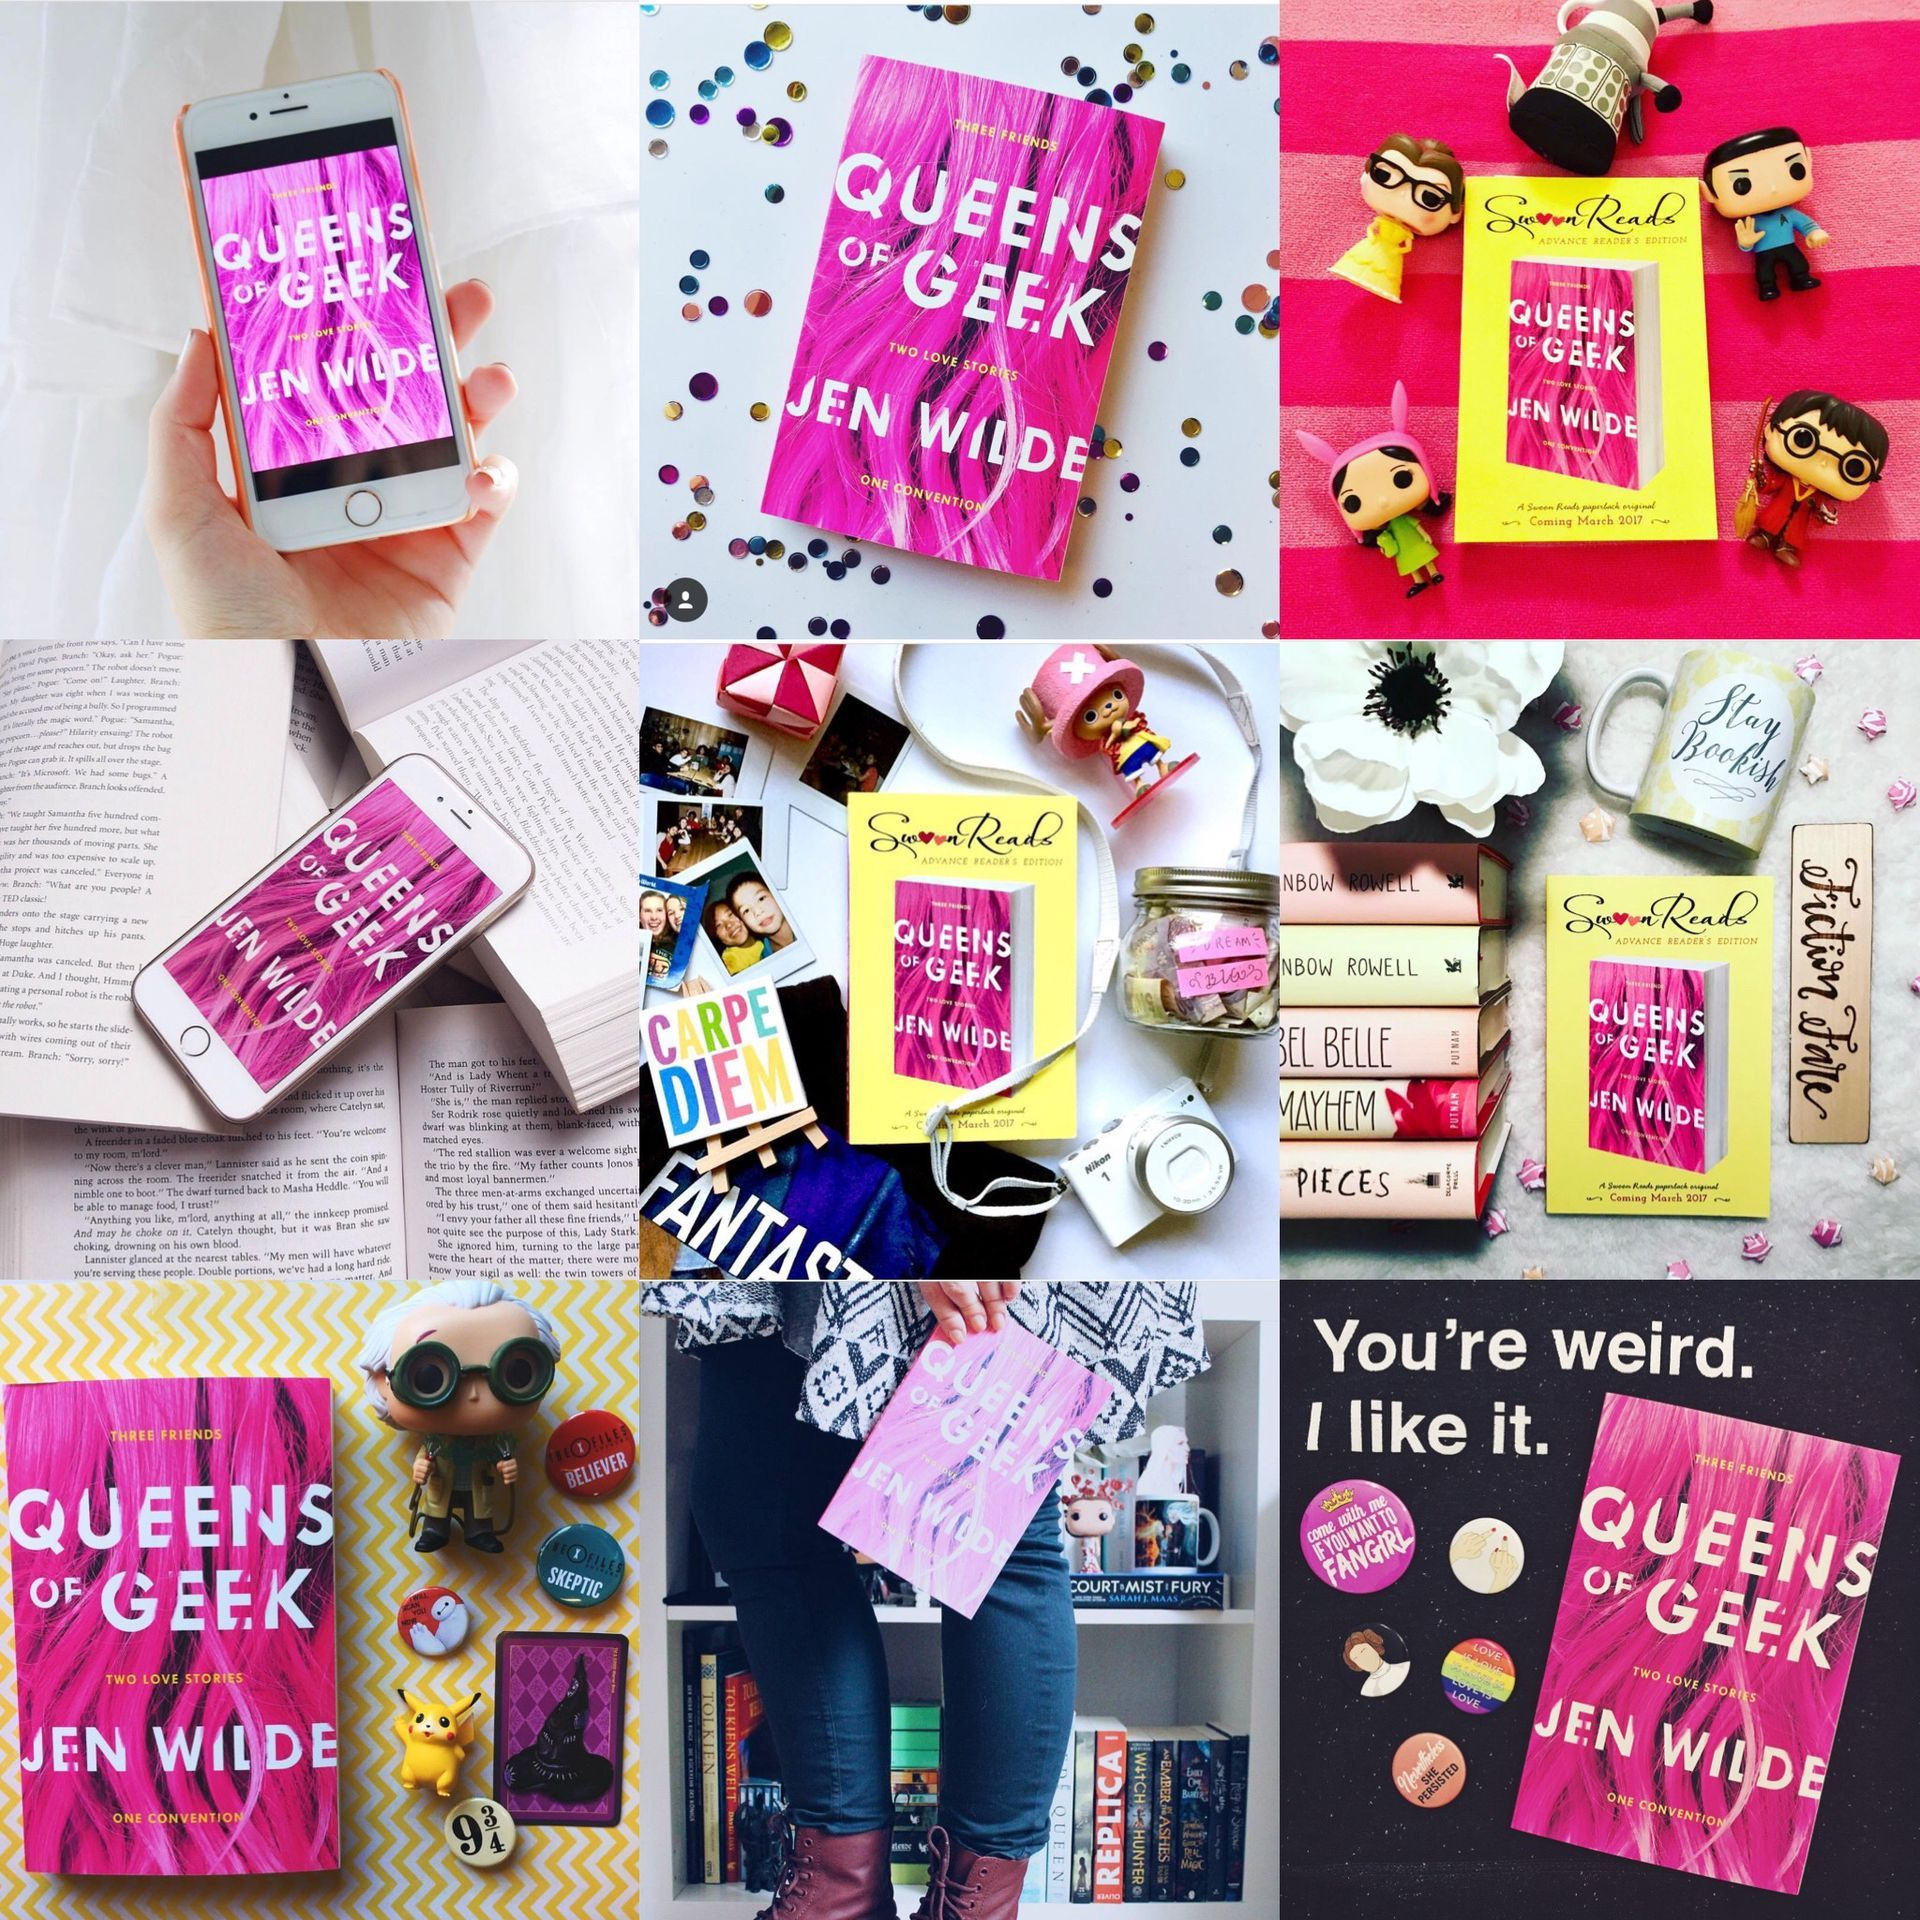 After what feels like an eternity of waiting, QUEENS OF GEEK is finally hitting shelves today! :D